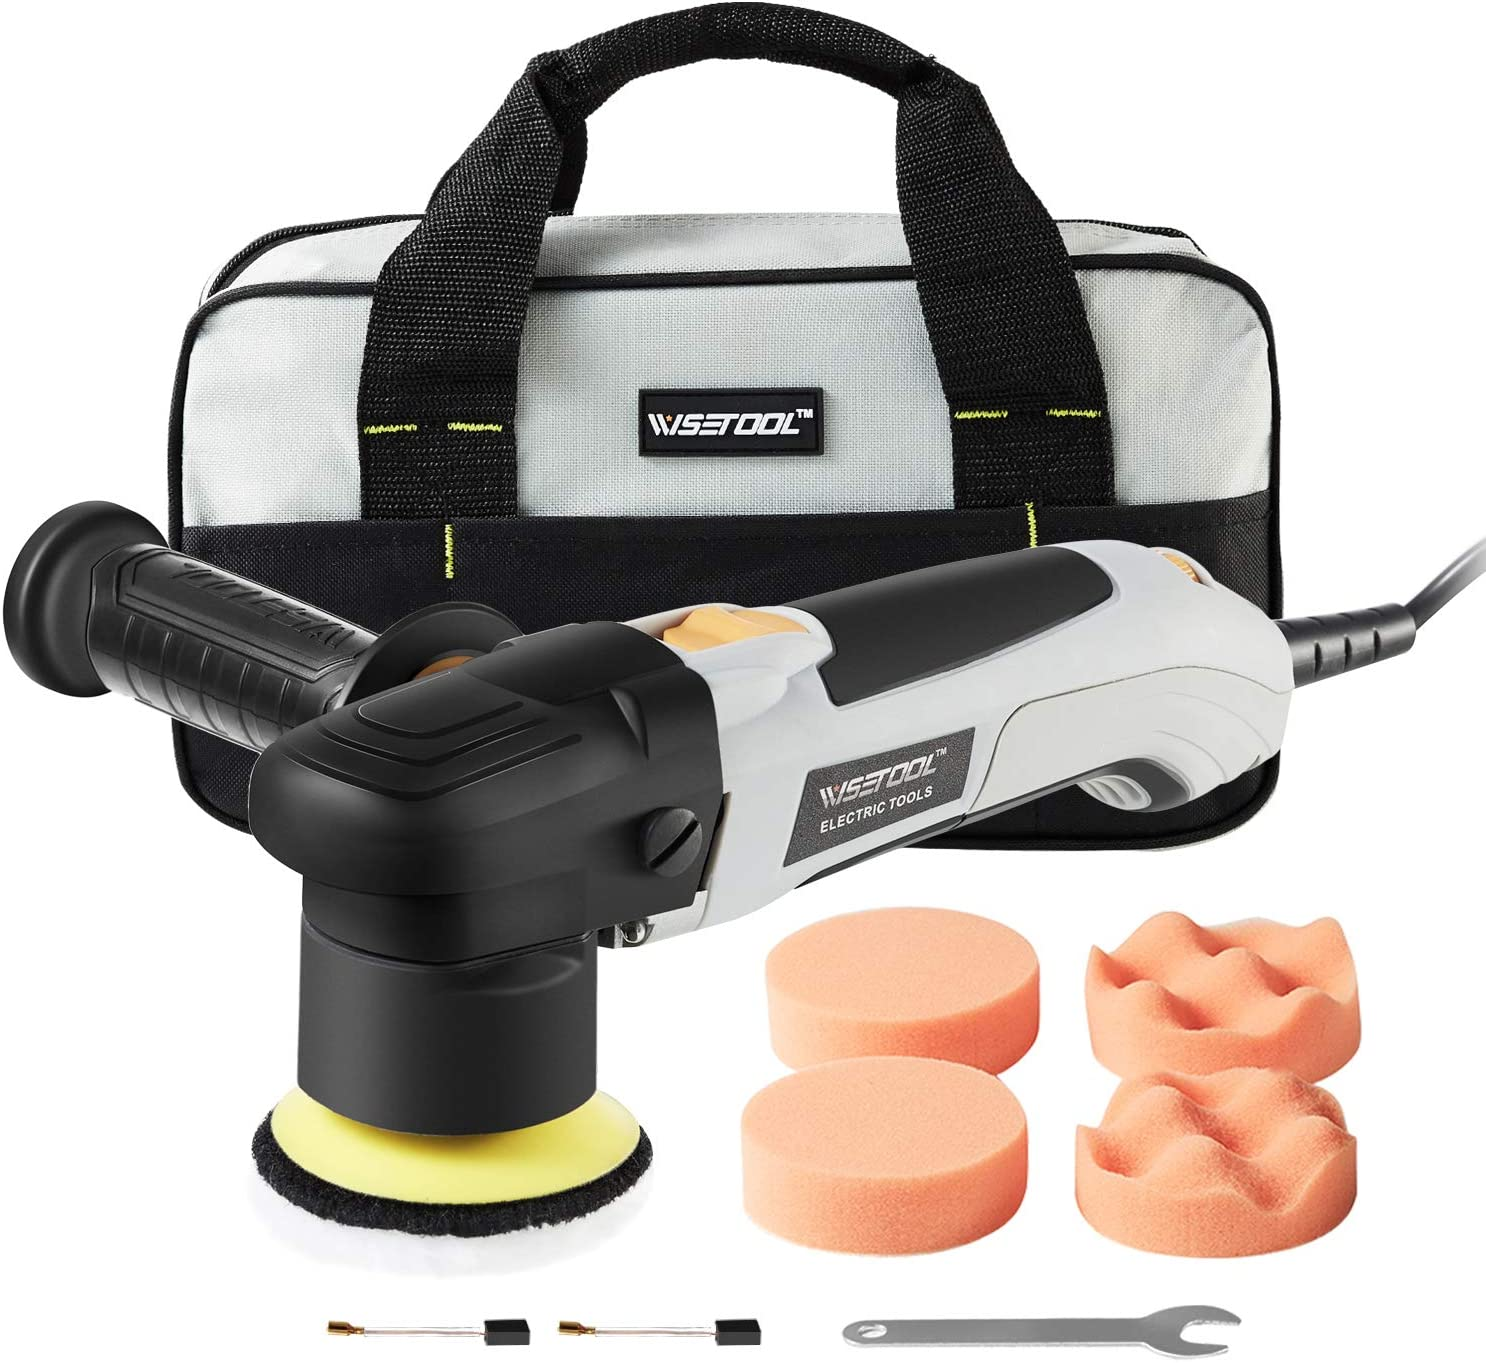 WISETOOL 300W 2.5Amp Dual Action Orbital Polisher,3 Inch Variable Speed Polisher Sander for Home Appliance Polishing,Car Sanding,Waxing,Sealing Glaze